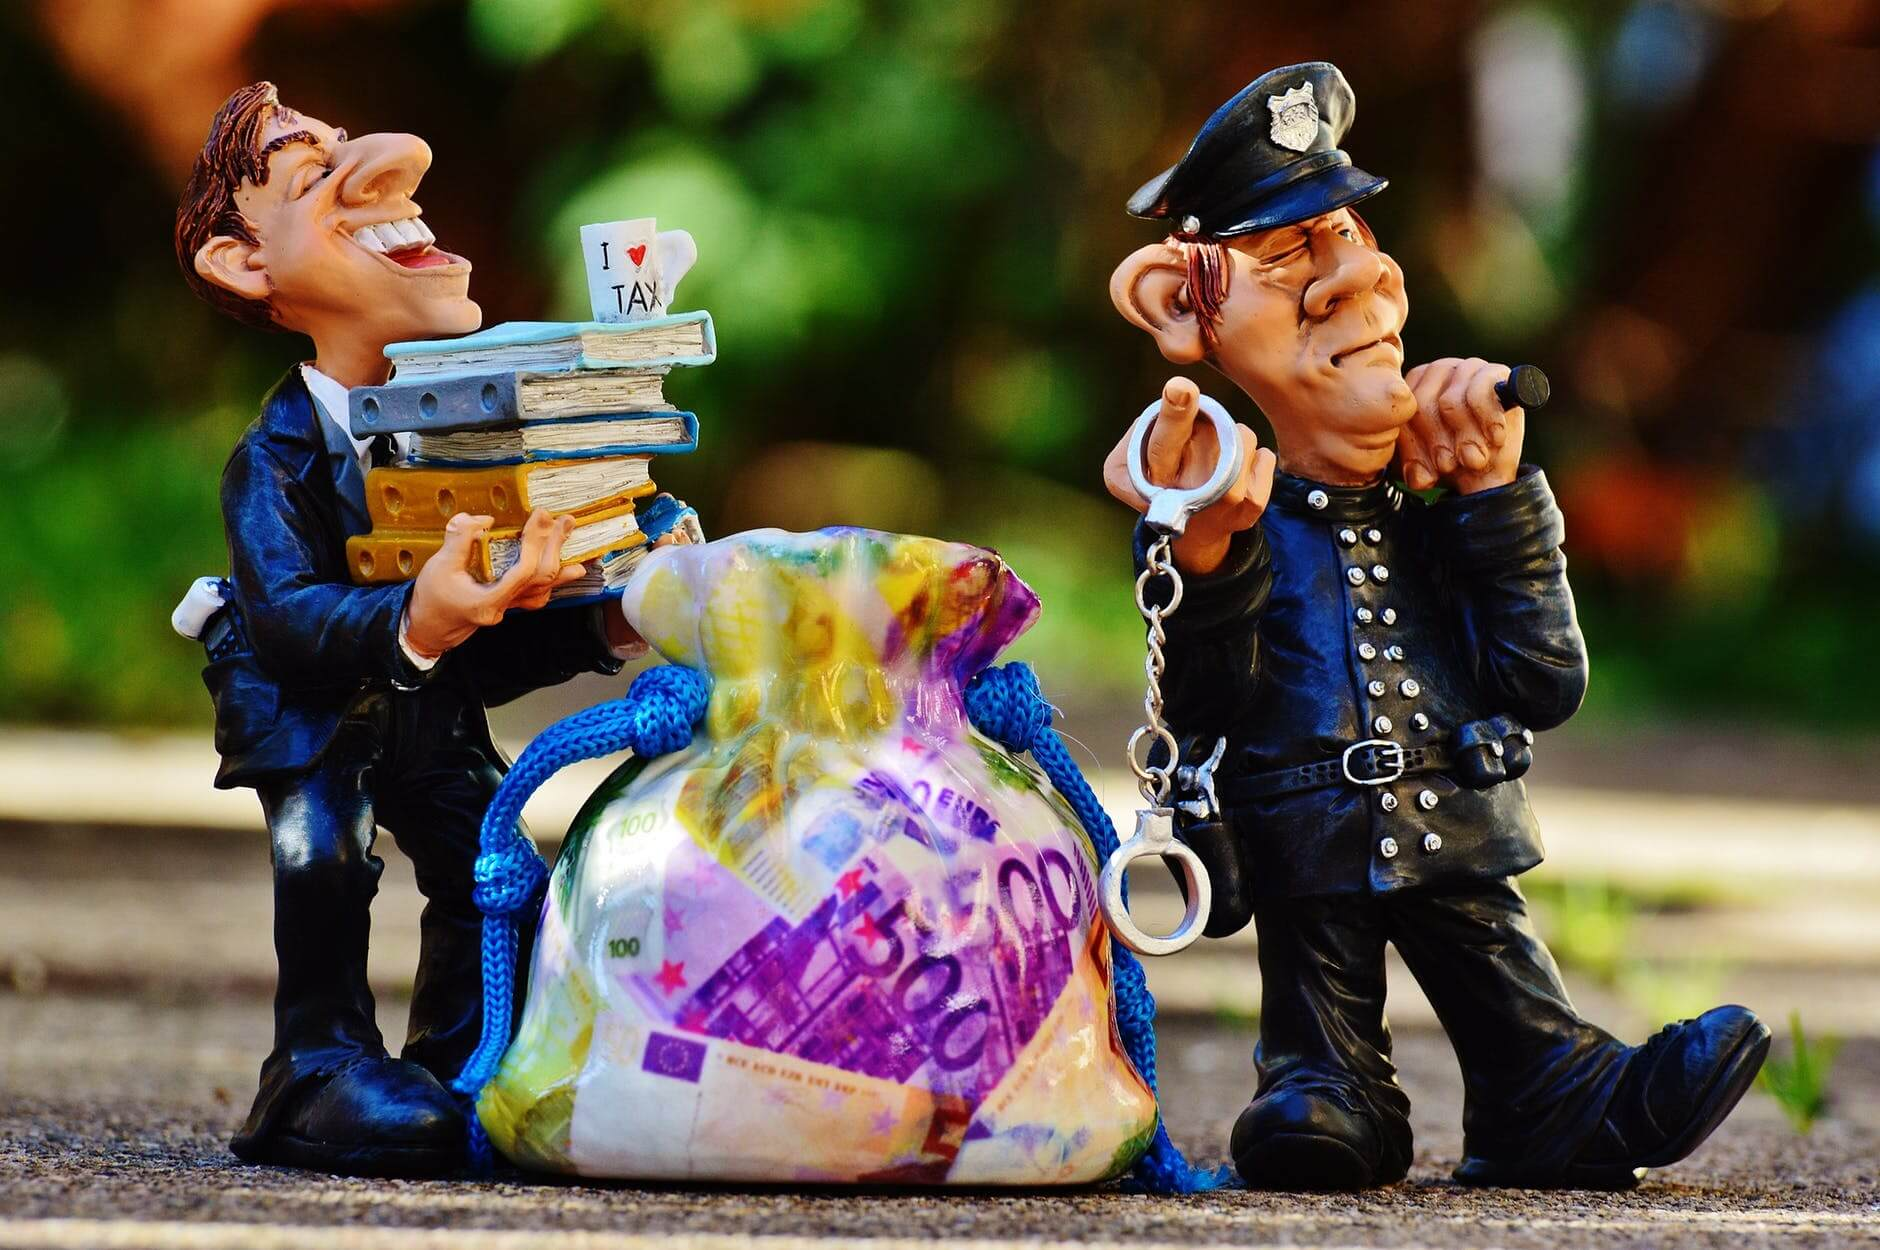 offshore banking tax penalty relief